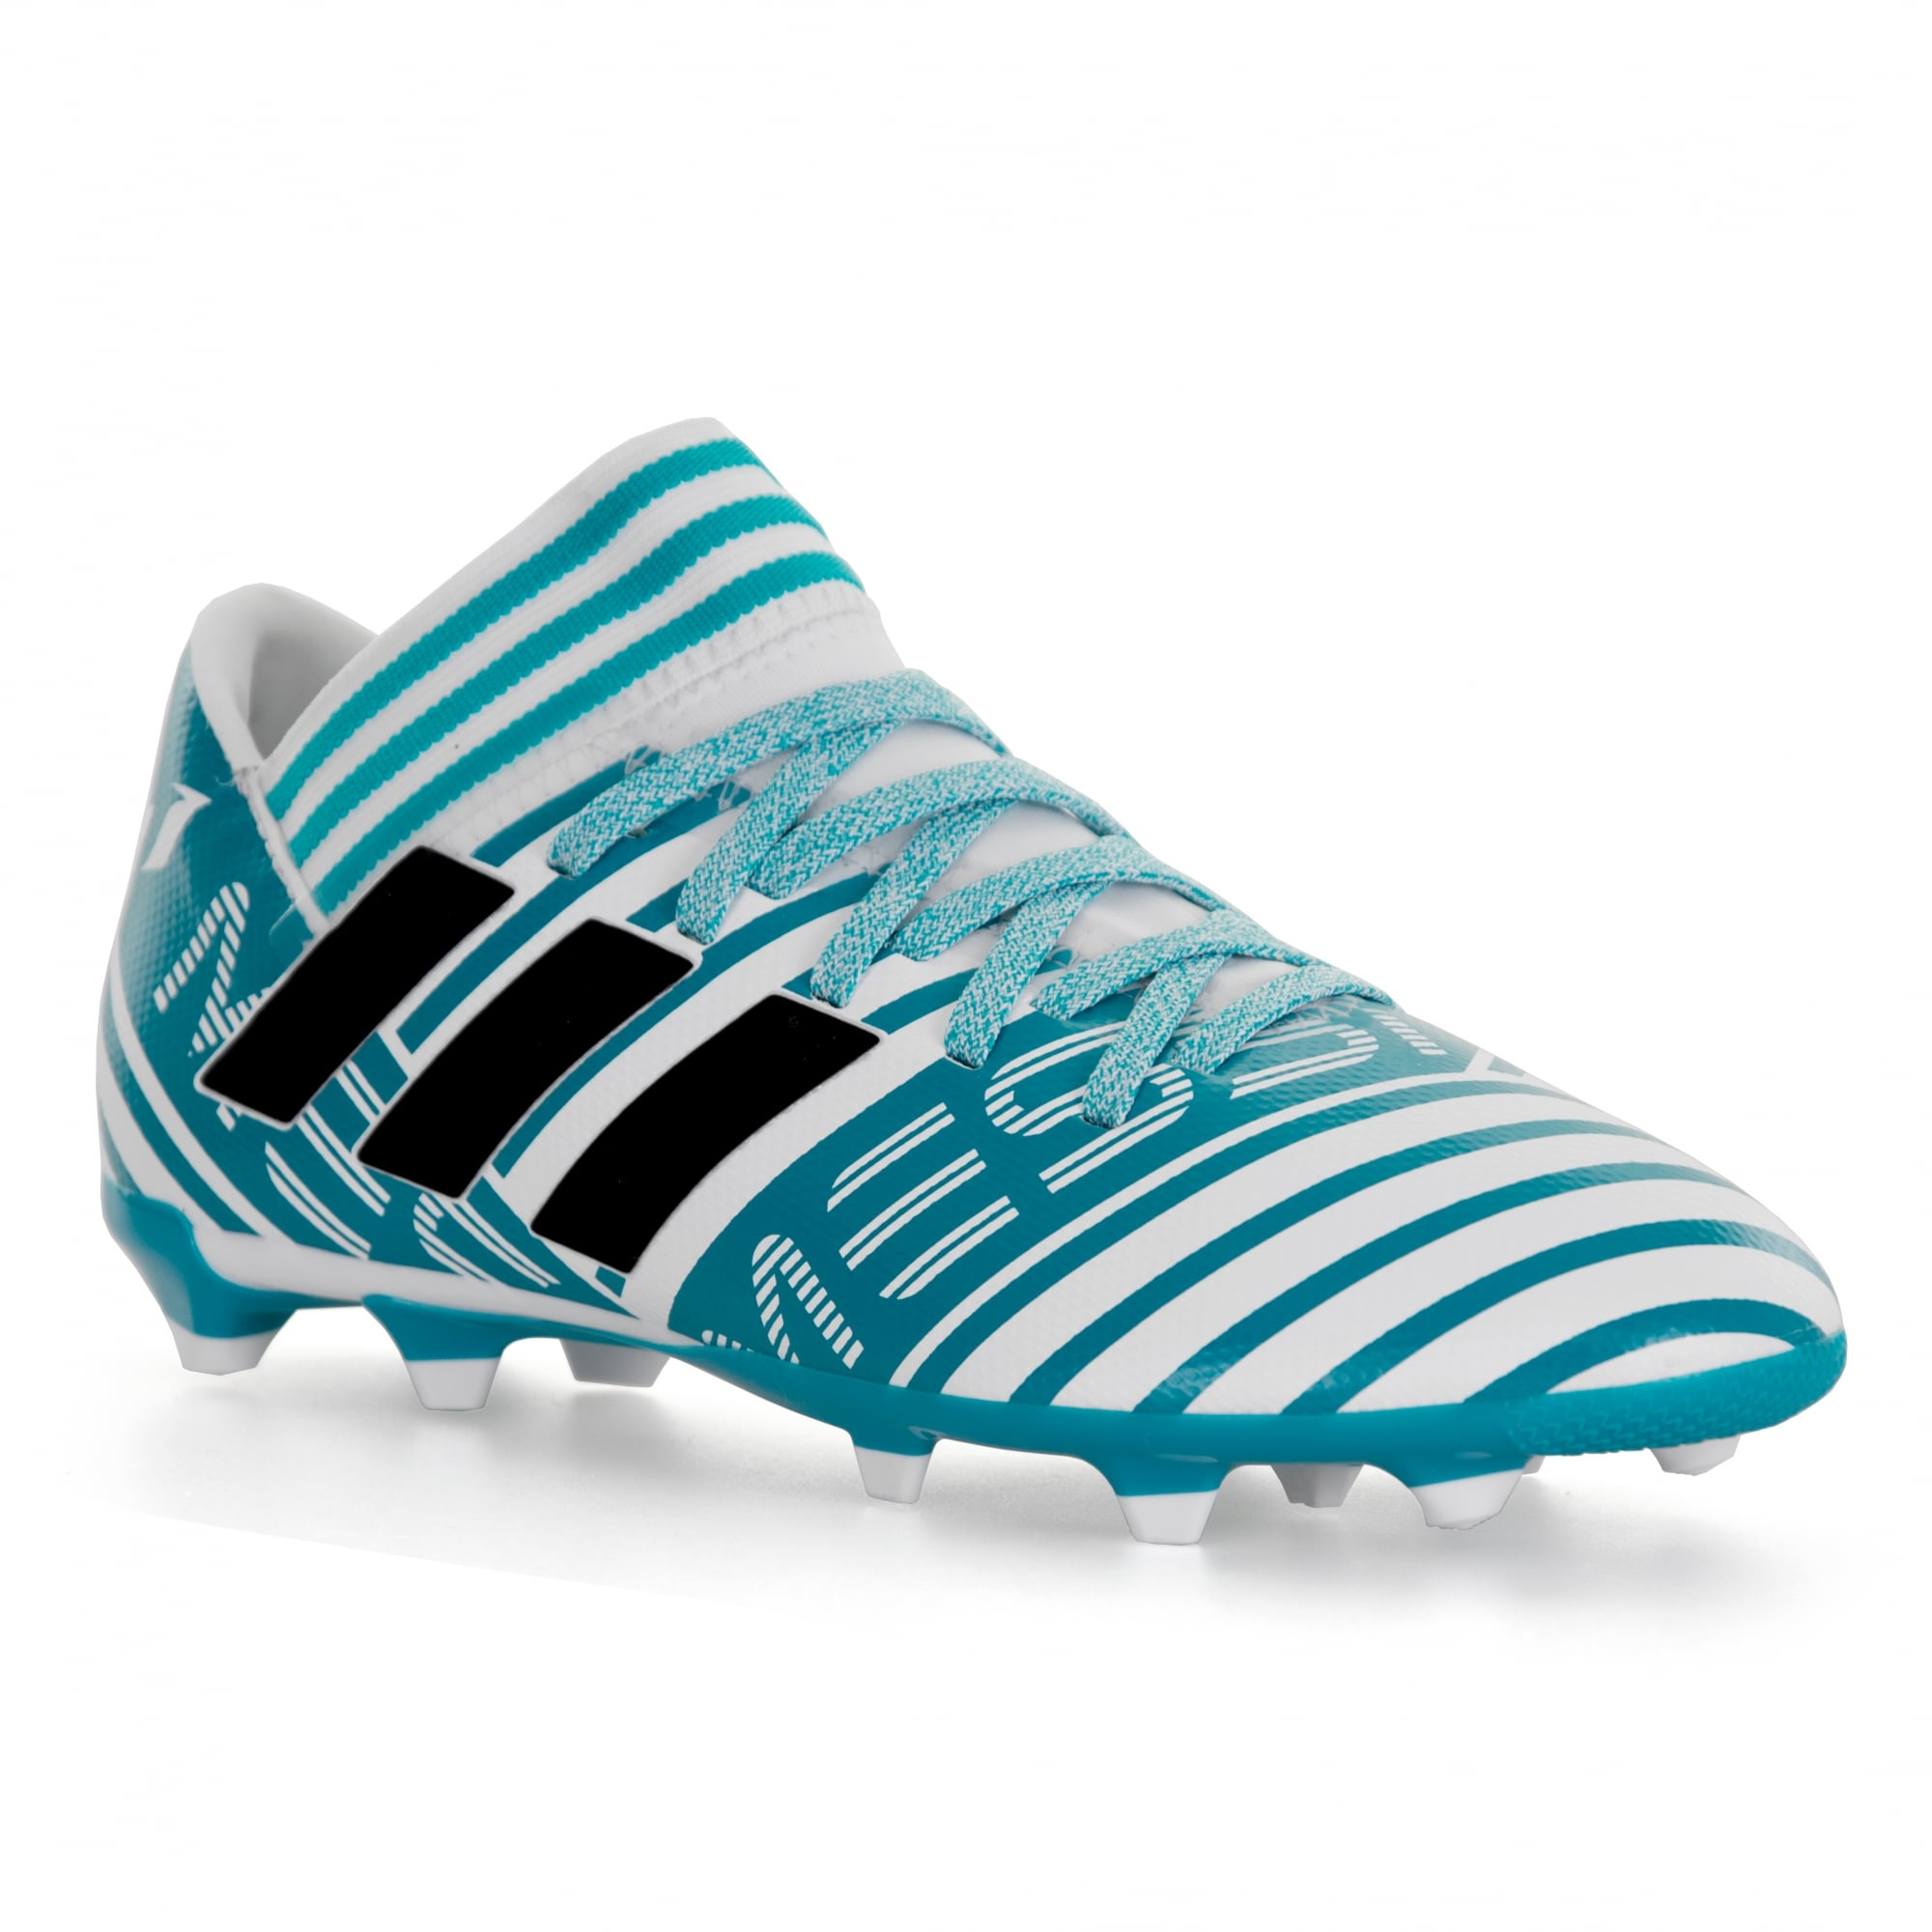 adidas shoes nemeziz first copyright issued date 624742